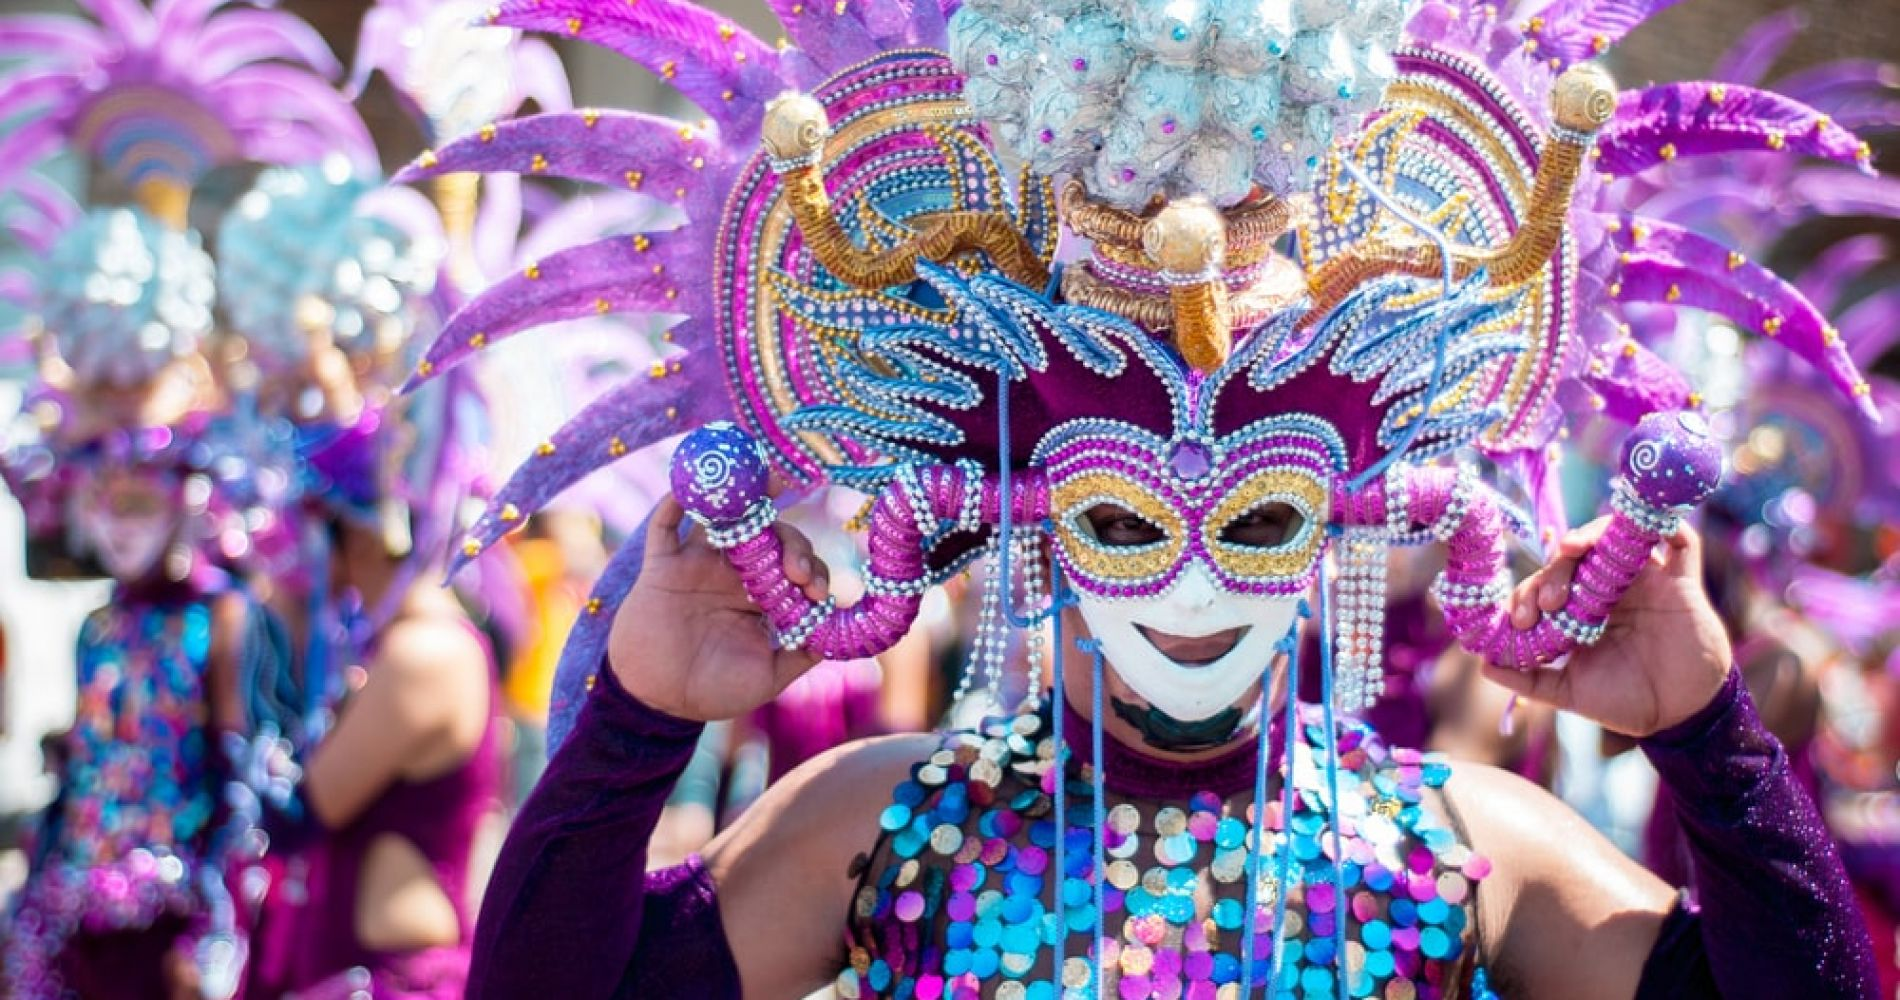 Participate in Mardi Gras Parade in New Orleans